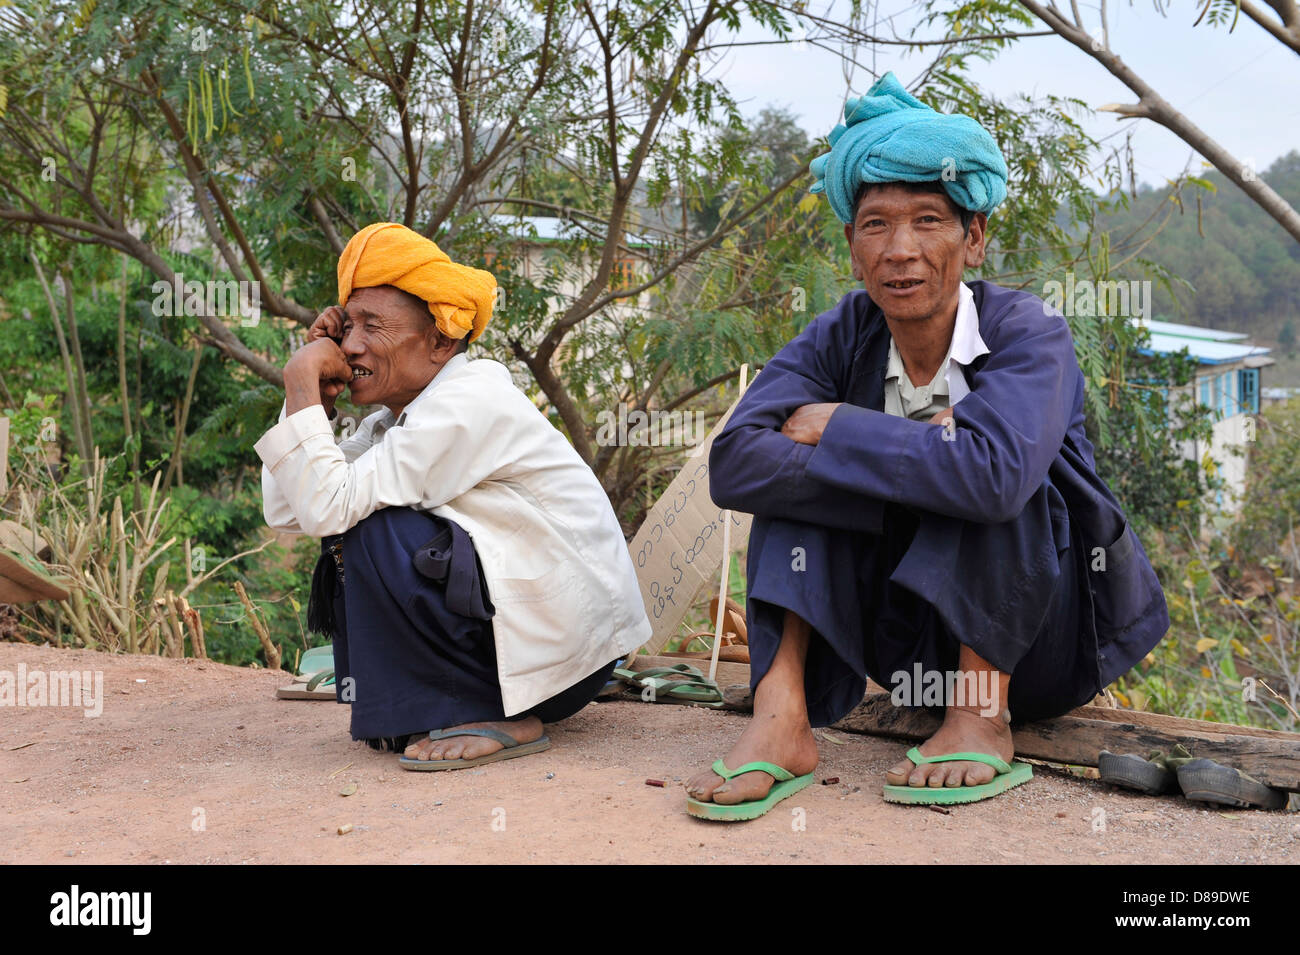 two Palaung men just relaxing - Stock Image